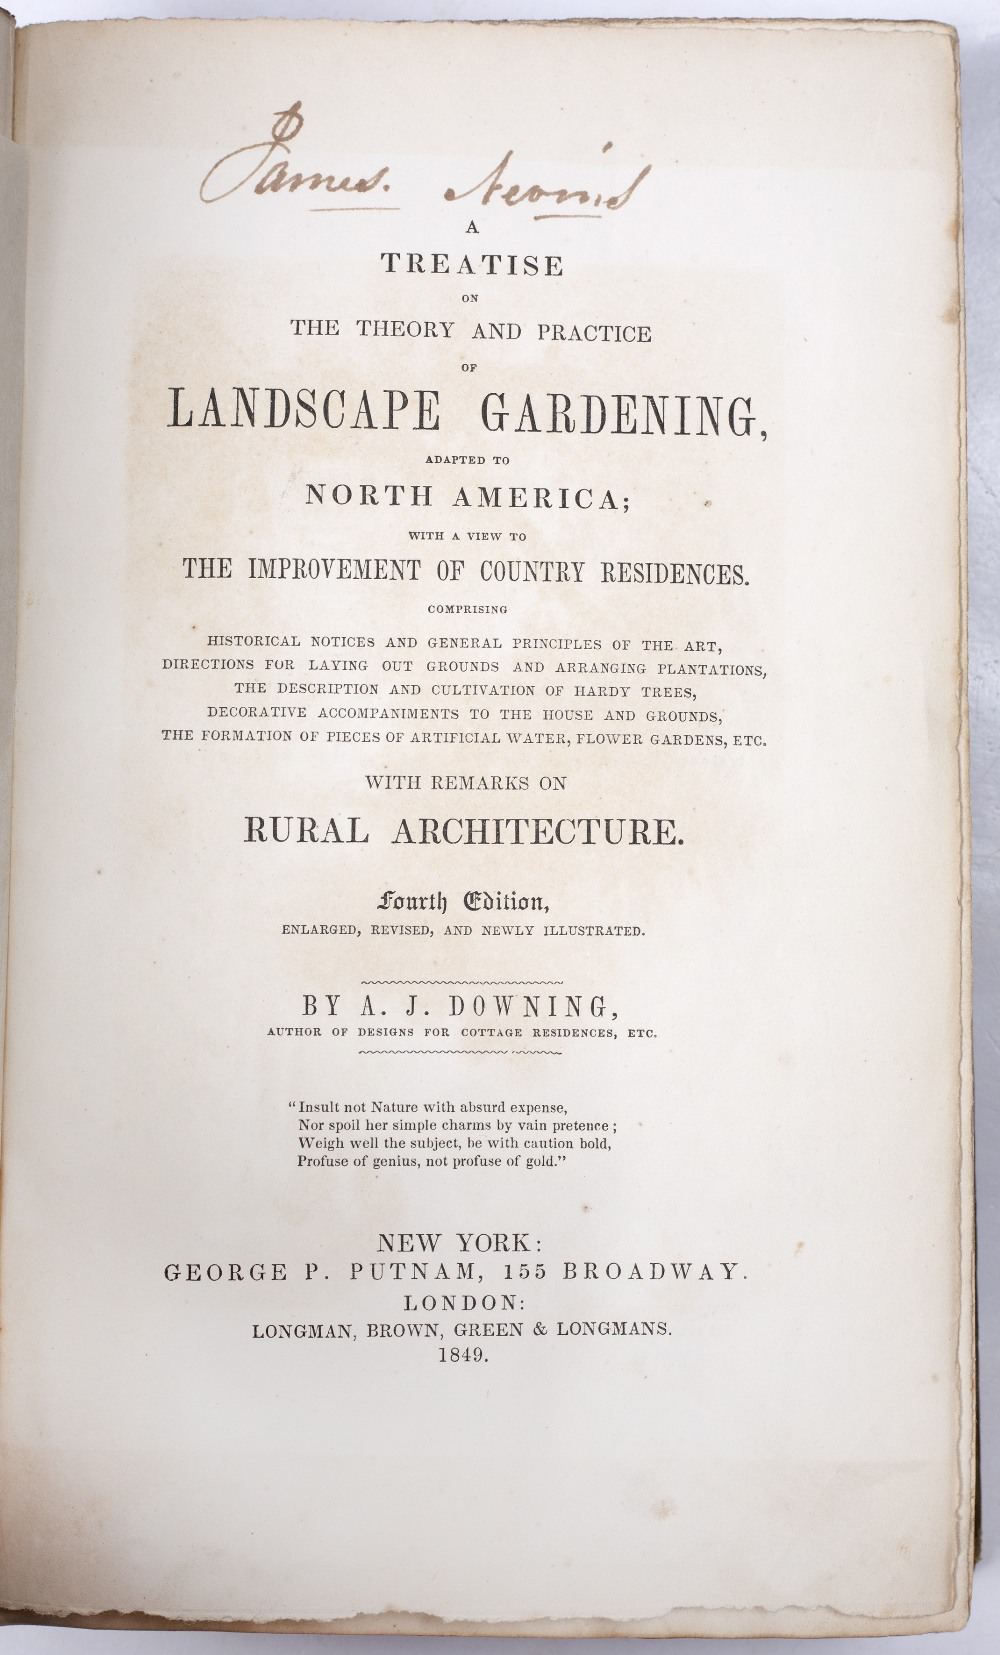 KEMP, Edward, 'How To Lay Out A Garden'. 3rd Ed. Bradbury and Evans, London 1850. green cloth plus - Image 2 of 3